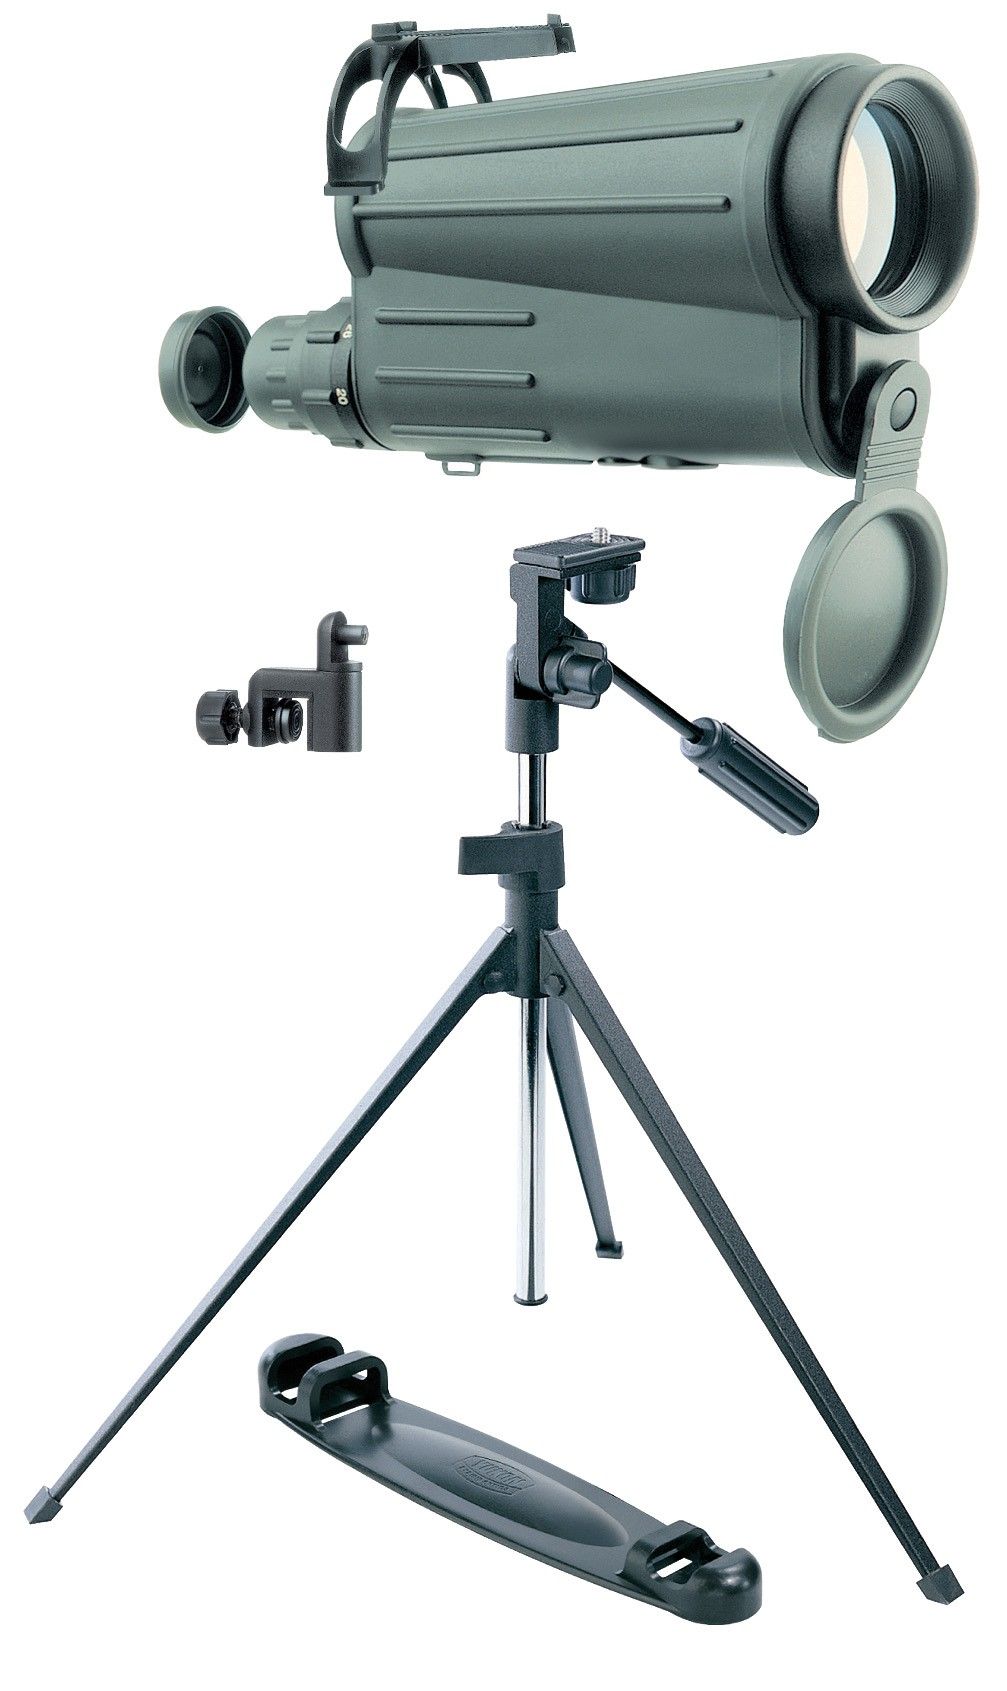 Yukon Scout 20-50x50 WA Spotting Scope Tripod Kit